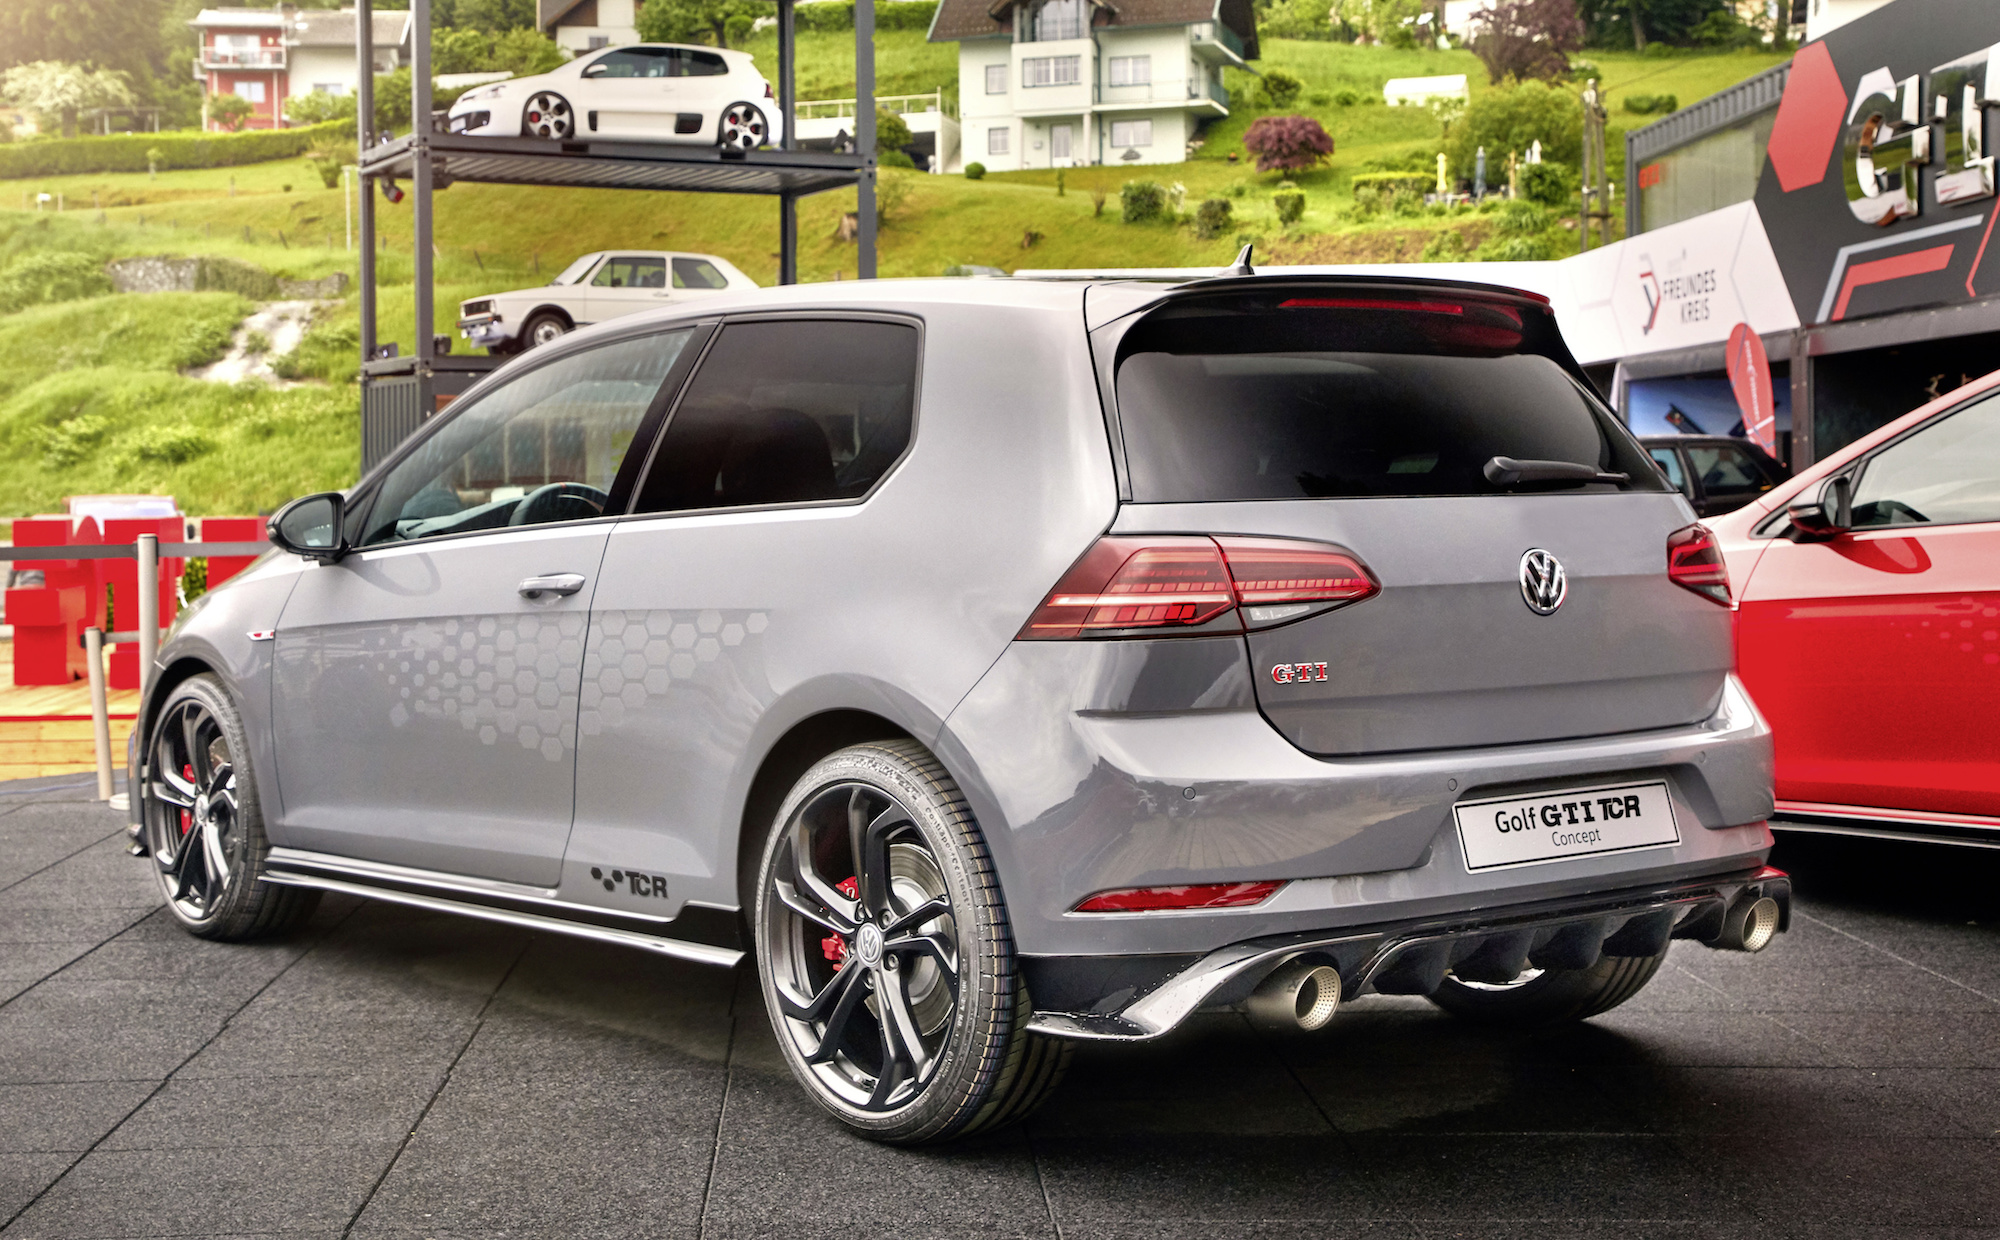 """German première of the Golf GTI TCR Concept at """"GTI Coming Home Wolfsburg 2018""""."""